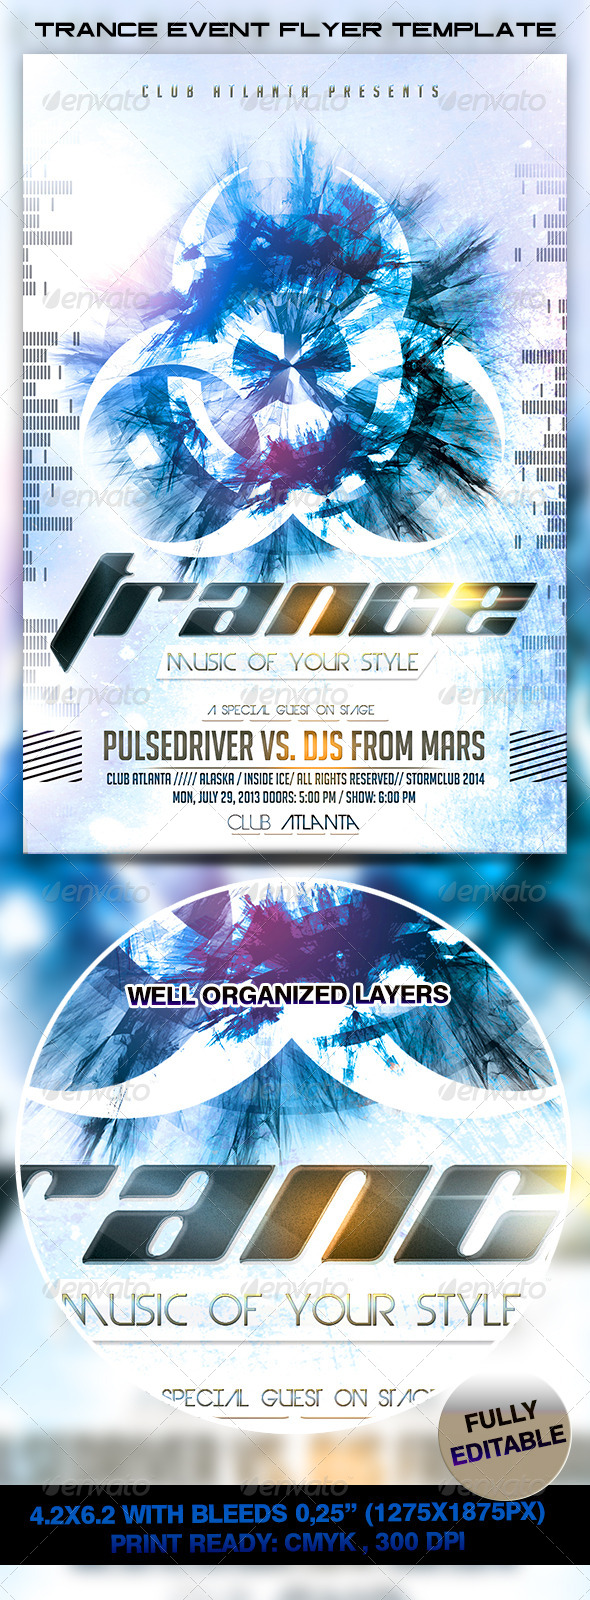 Trance Event Flyer Template - Events Flyers